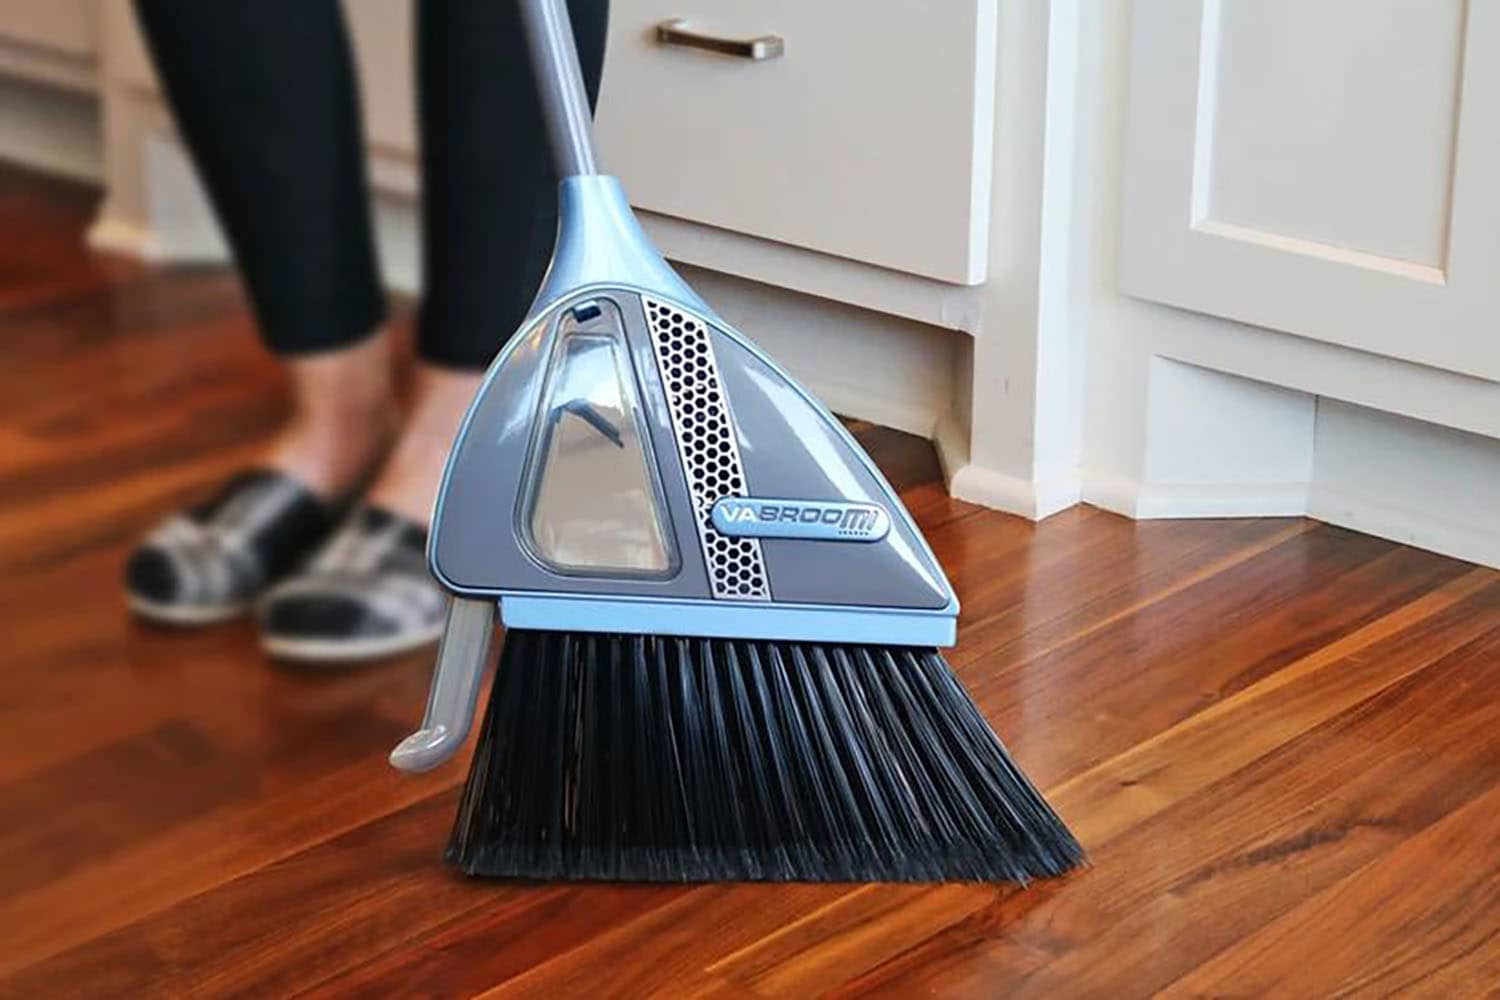 This 2-in-1 Broom Promises to Vacuum Away Your Mess (No Dustpan Needed!), So I Had to Try it For Myself